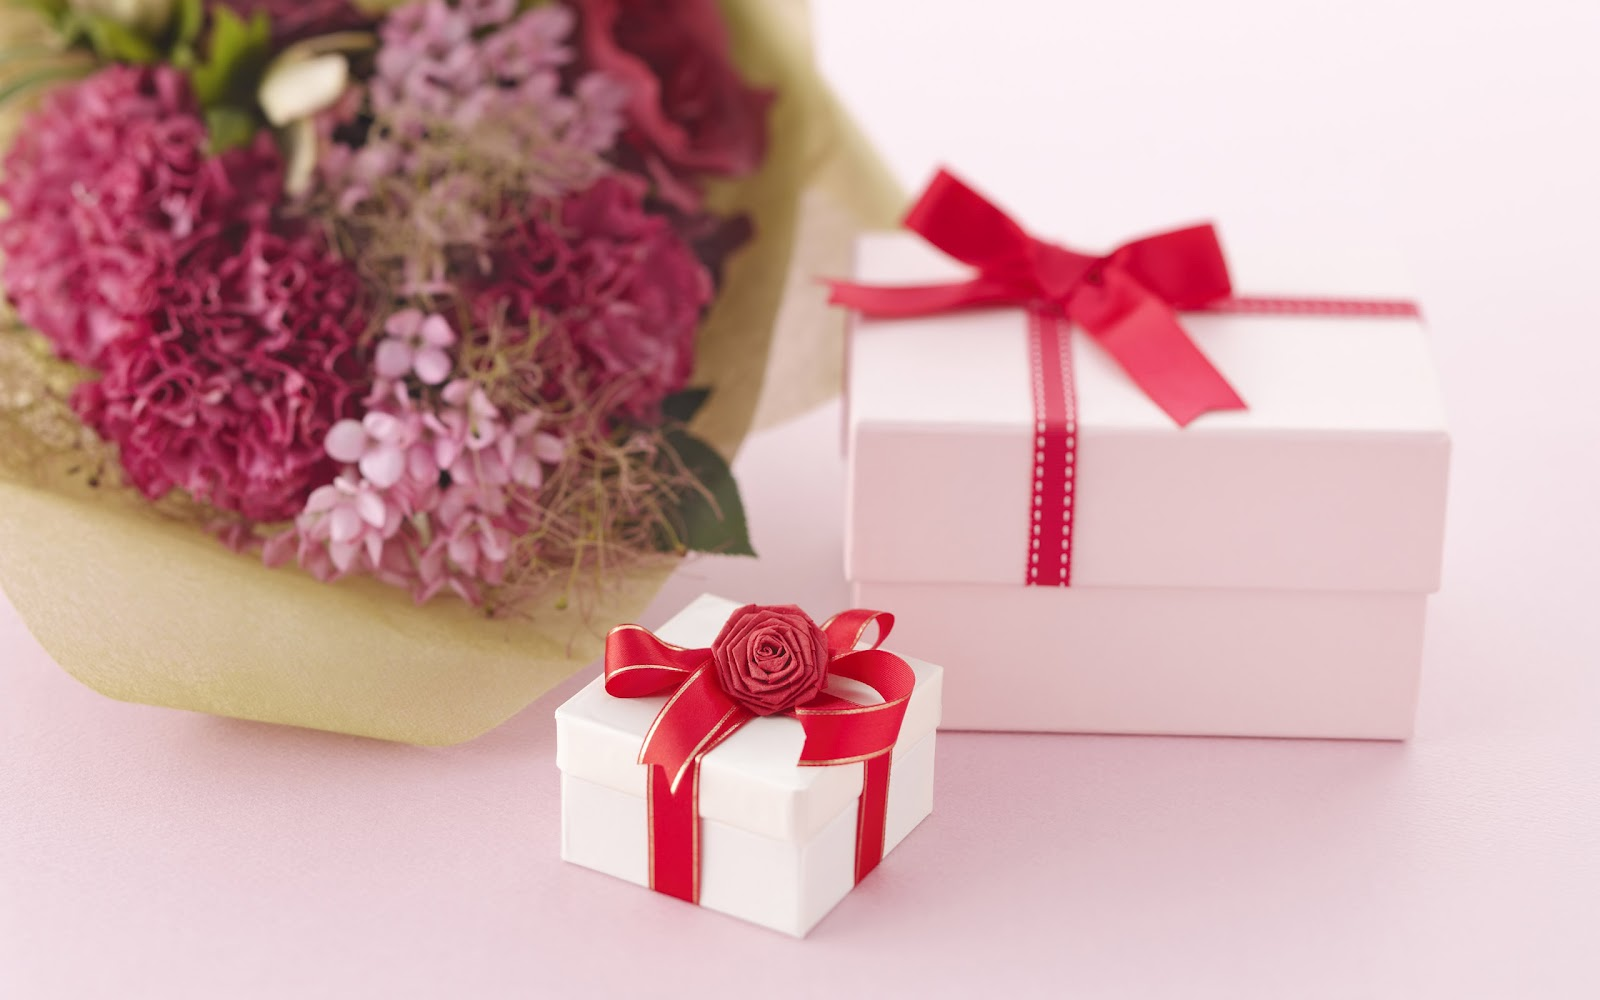 beauty flower: gift and love flower wallpaper